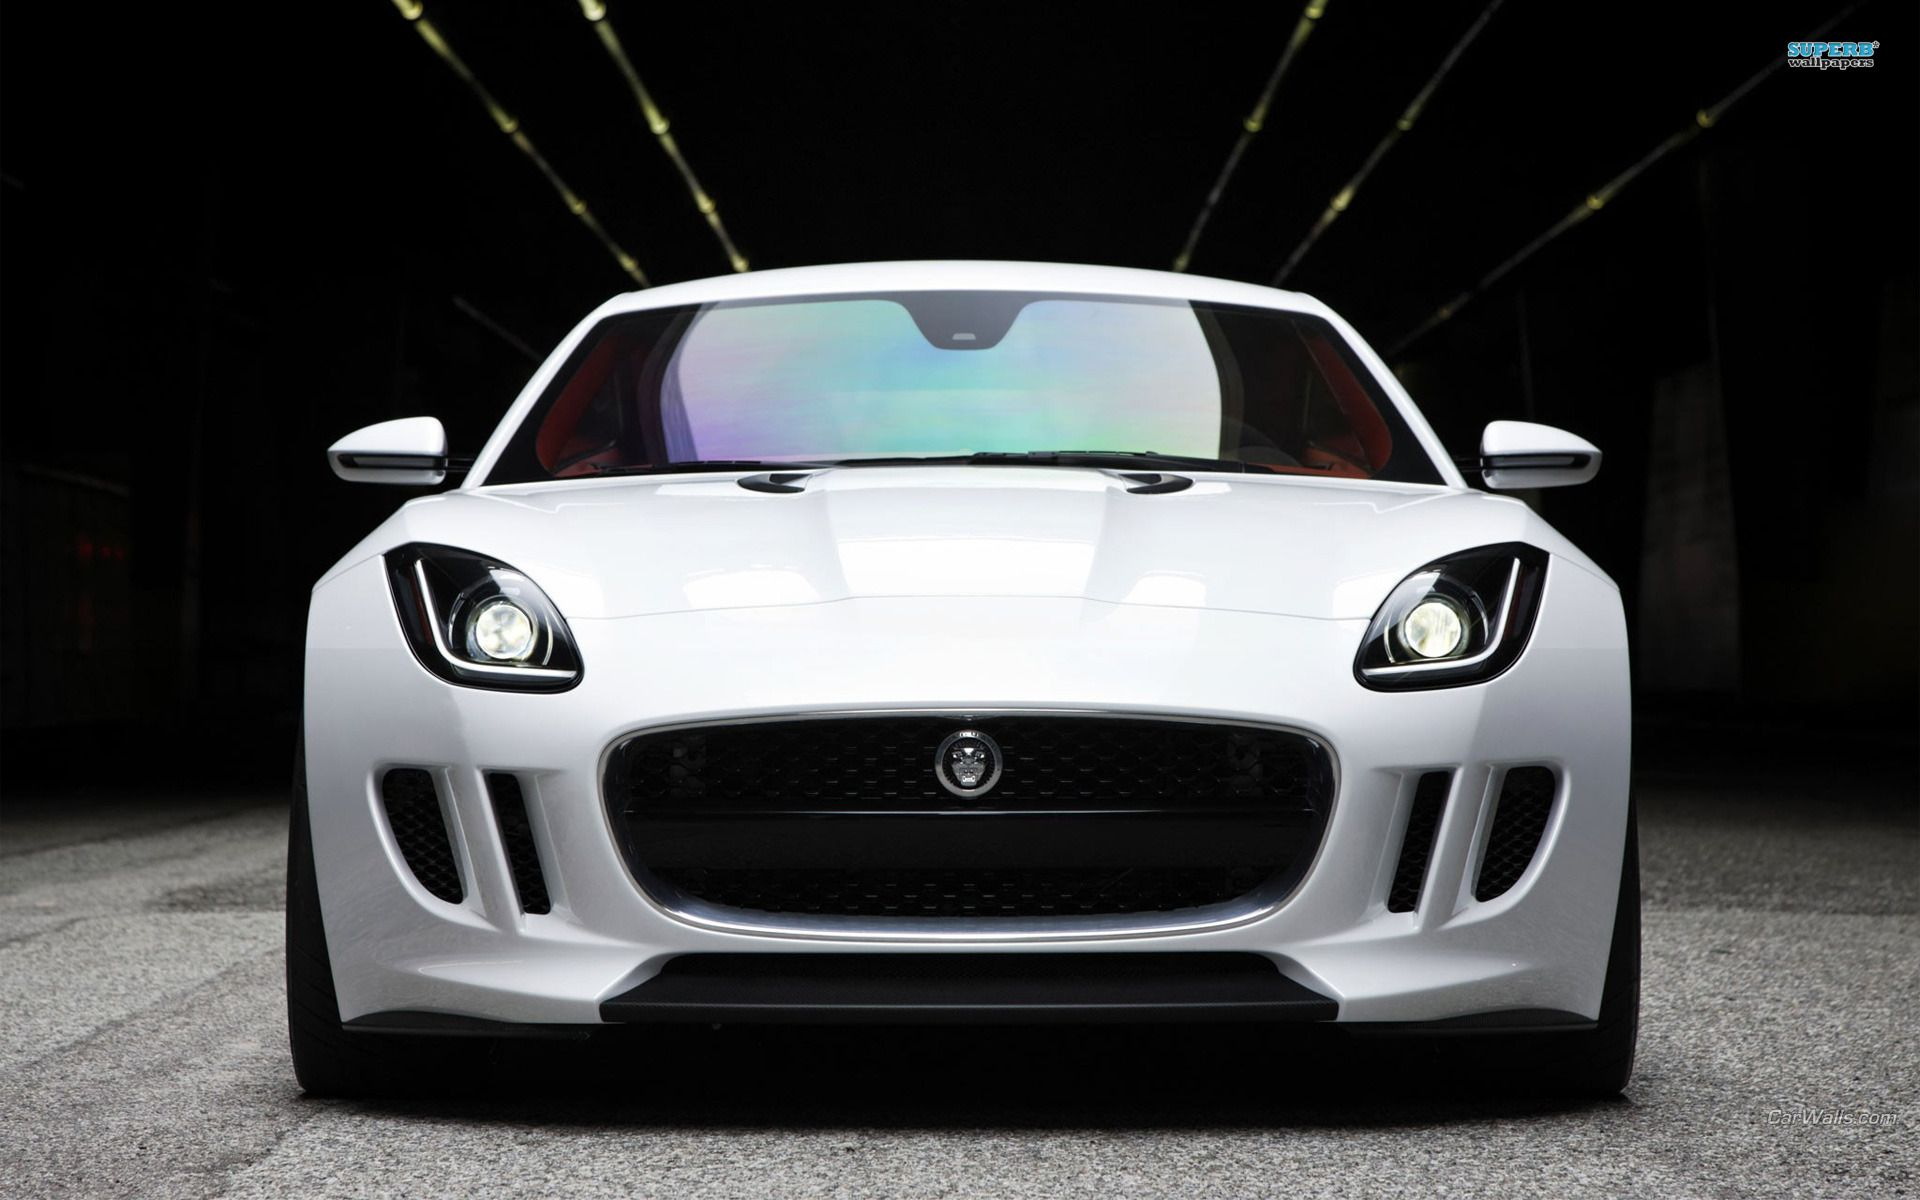 Jaguar Car Hd Wallpapers Top Free Jaguar Car Hd Backgrounds